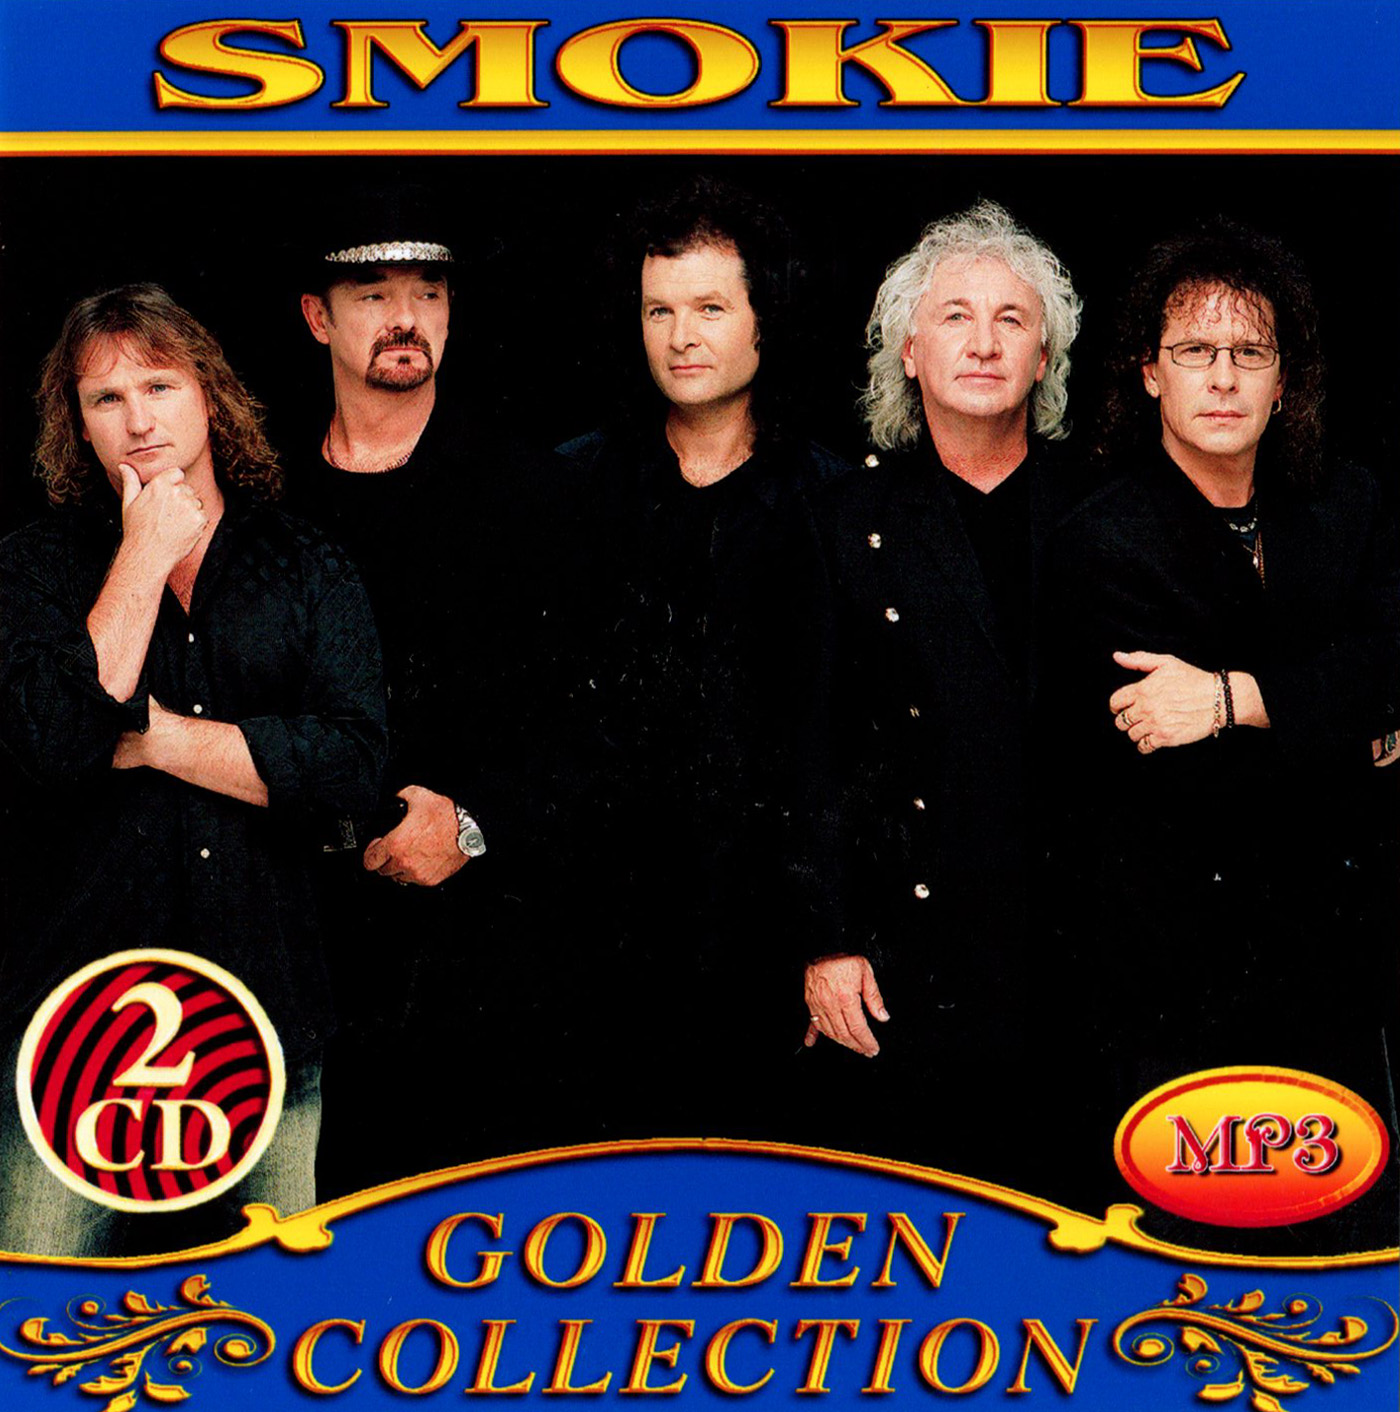 Smokie 2cd [mp3]